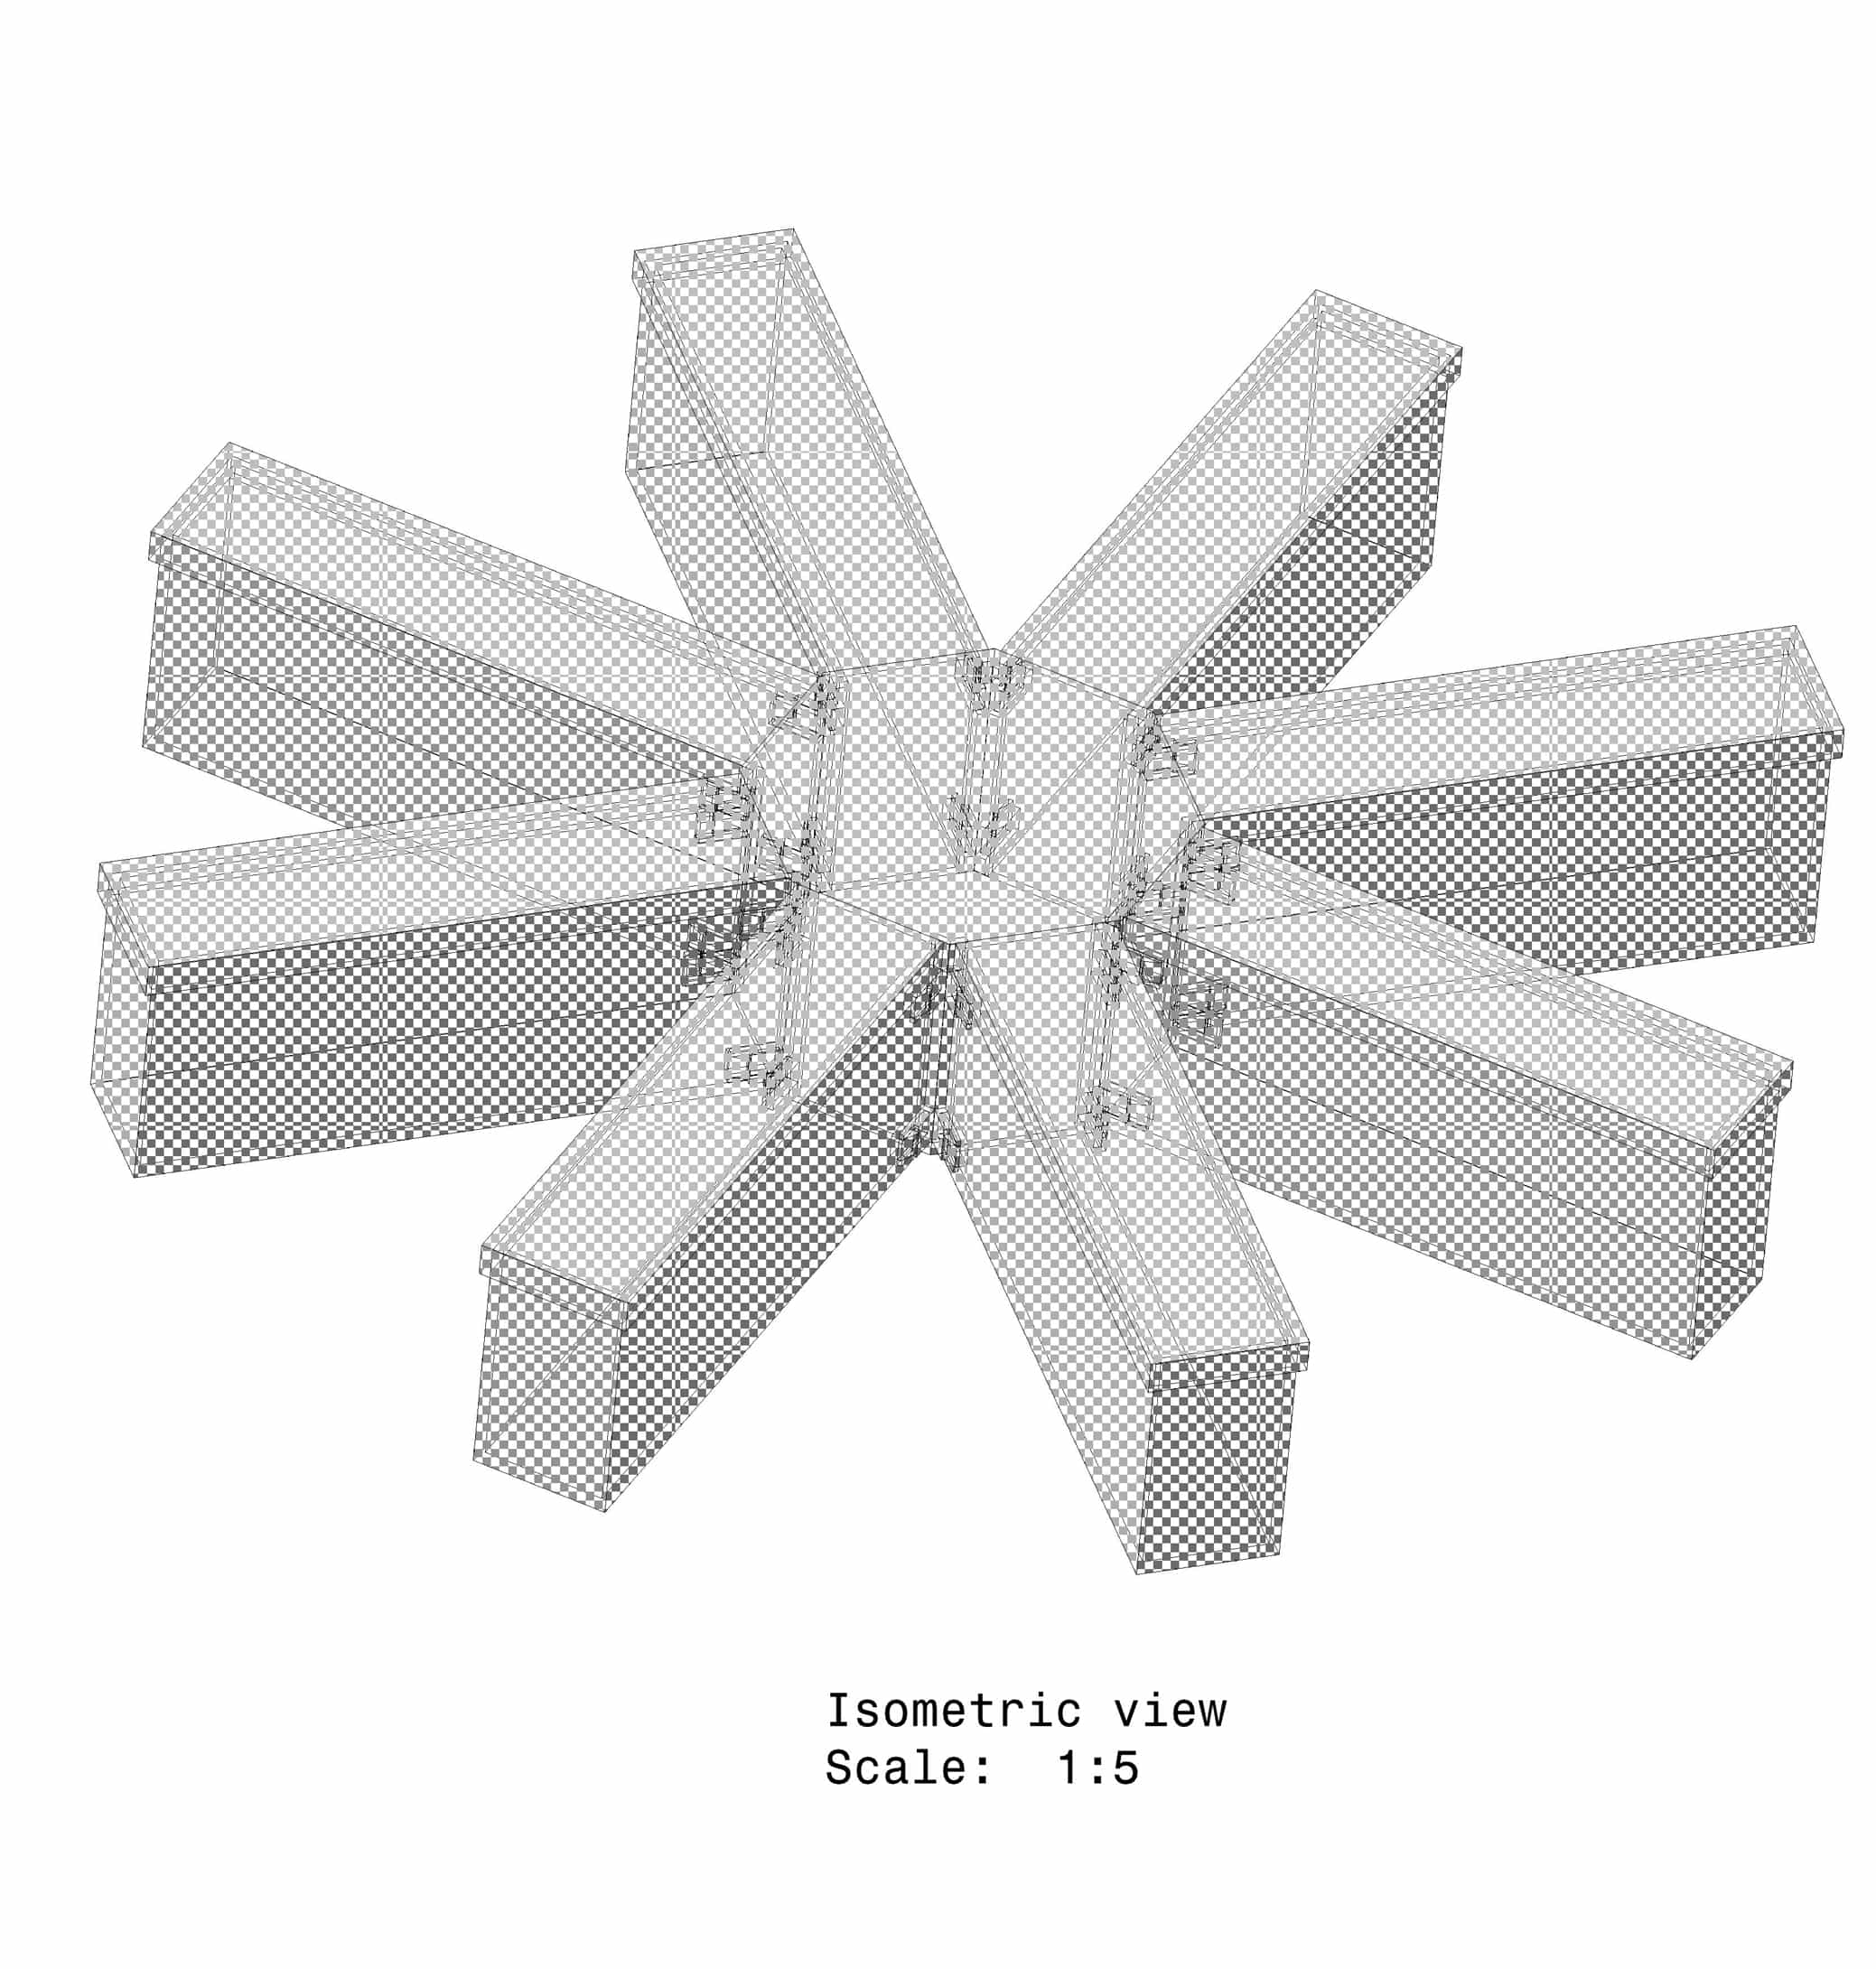 Radial Arm Maze - Removable Model - Mouse (Image 1)